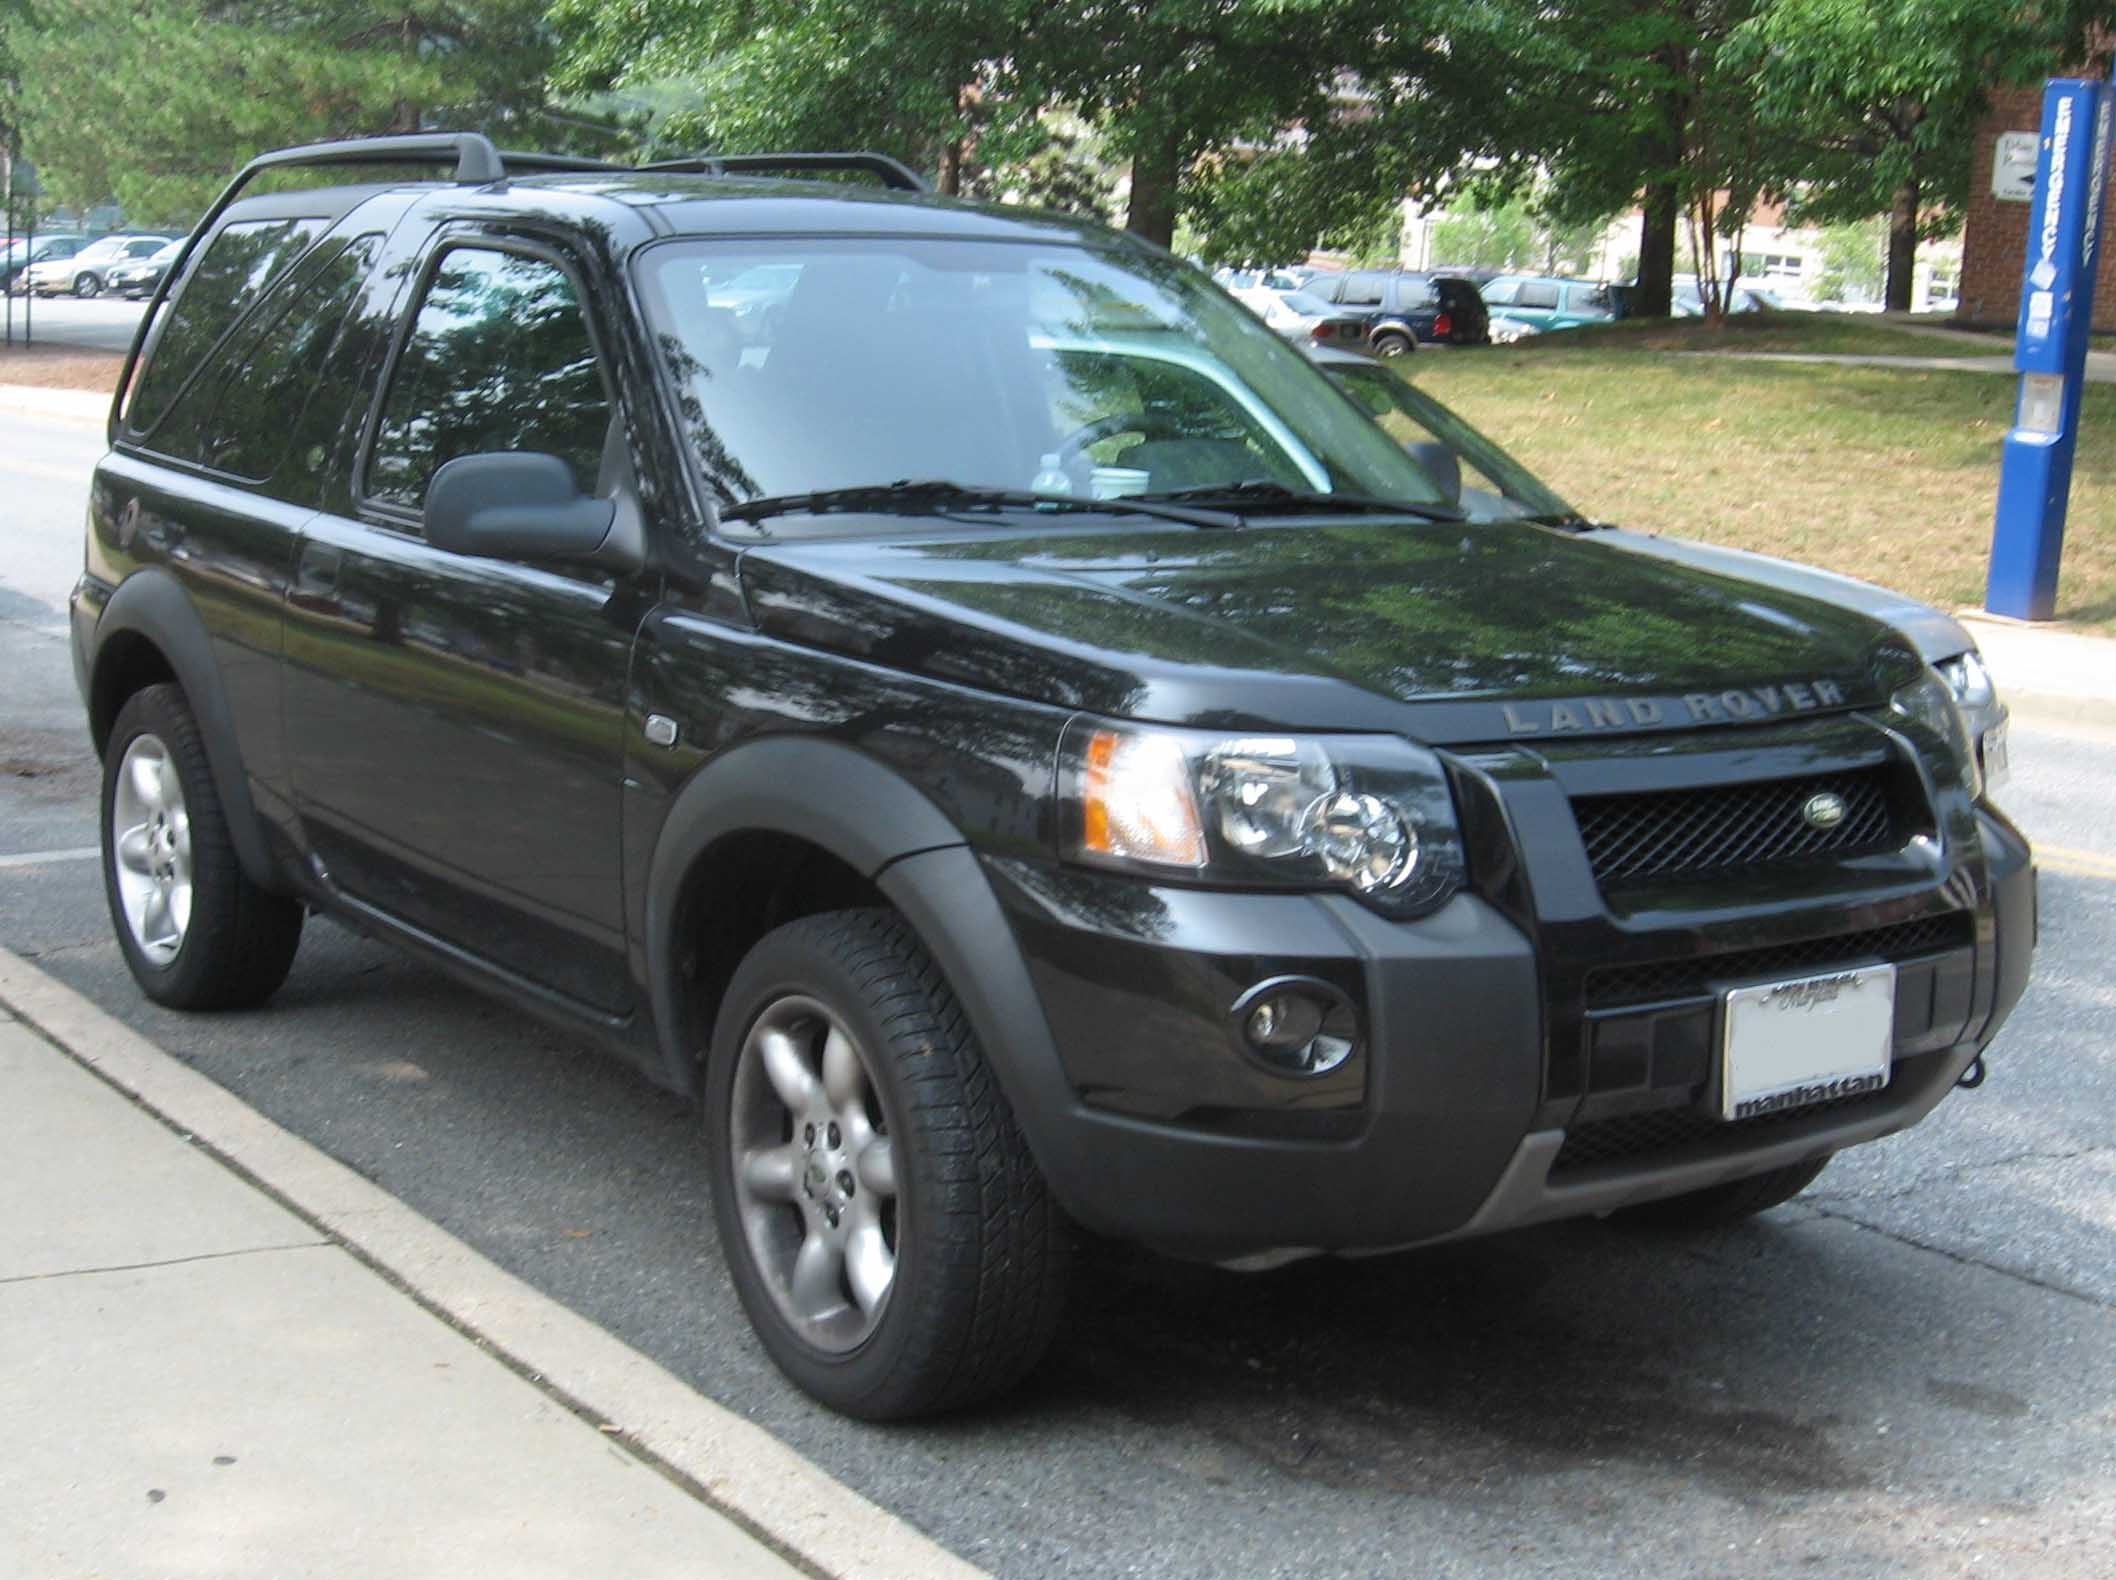 https://upload.wikimedia.org/wikipedia/commons/2/27/04-06_Land_Rover_Freelander_3door.jpg